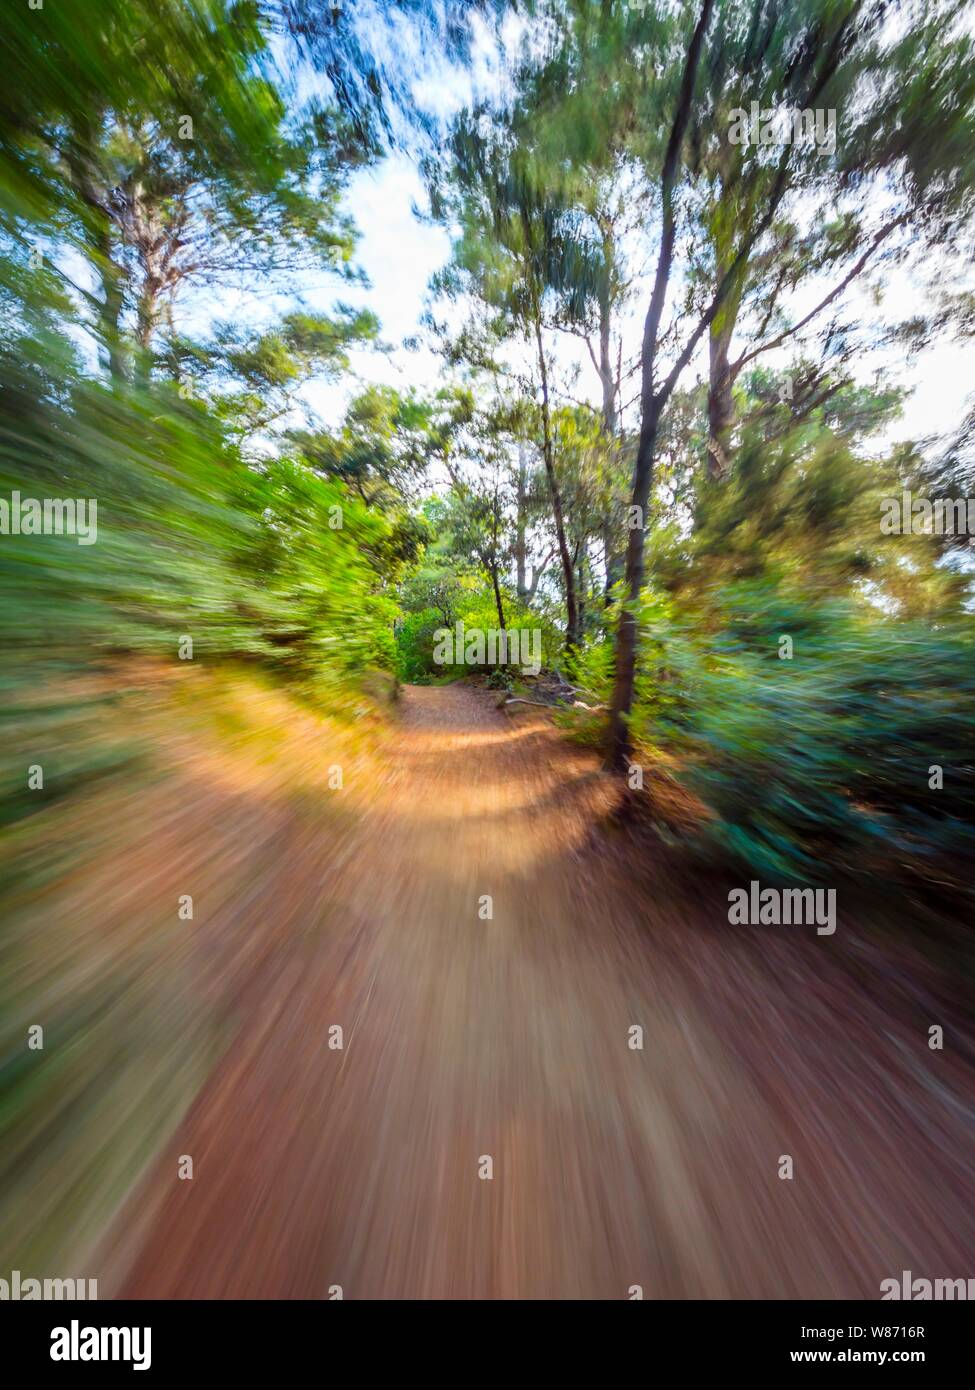 Green forest countryside path pathway speeding through dense trees natural environment Stock Photo